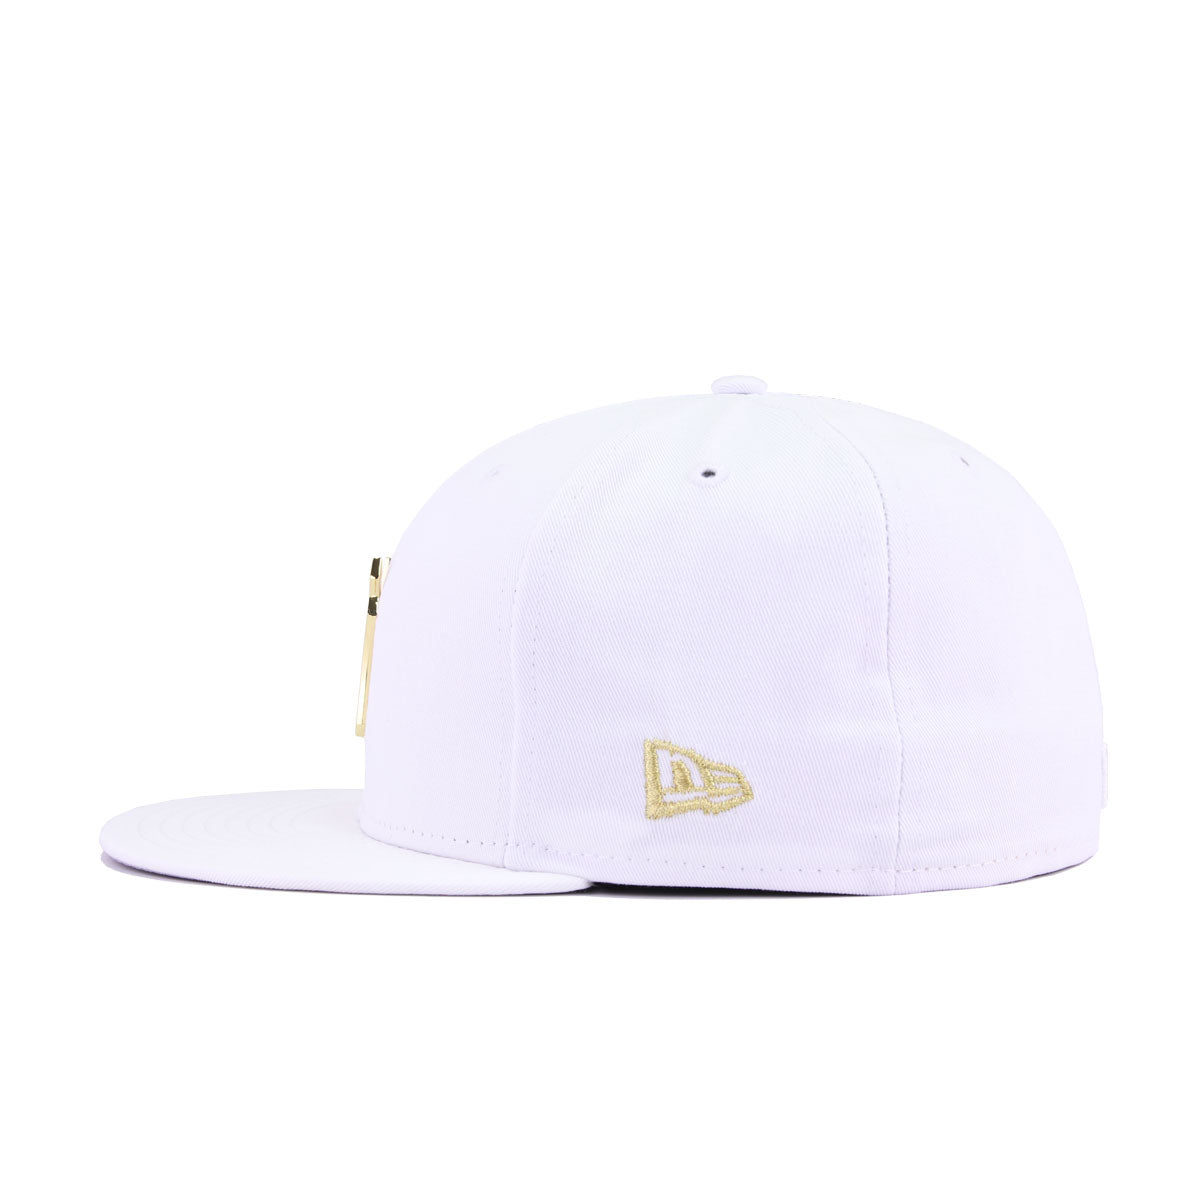 New York Yankees White Twill Gold Metal Badge New Era 59Fifty Fitted